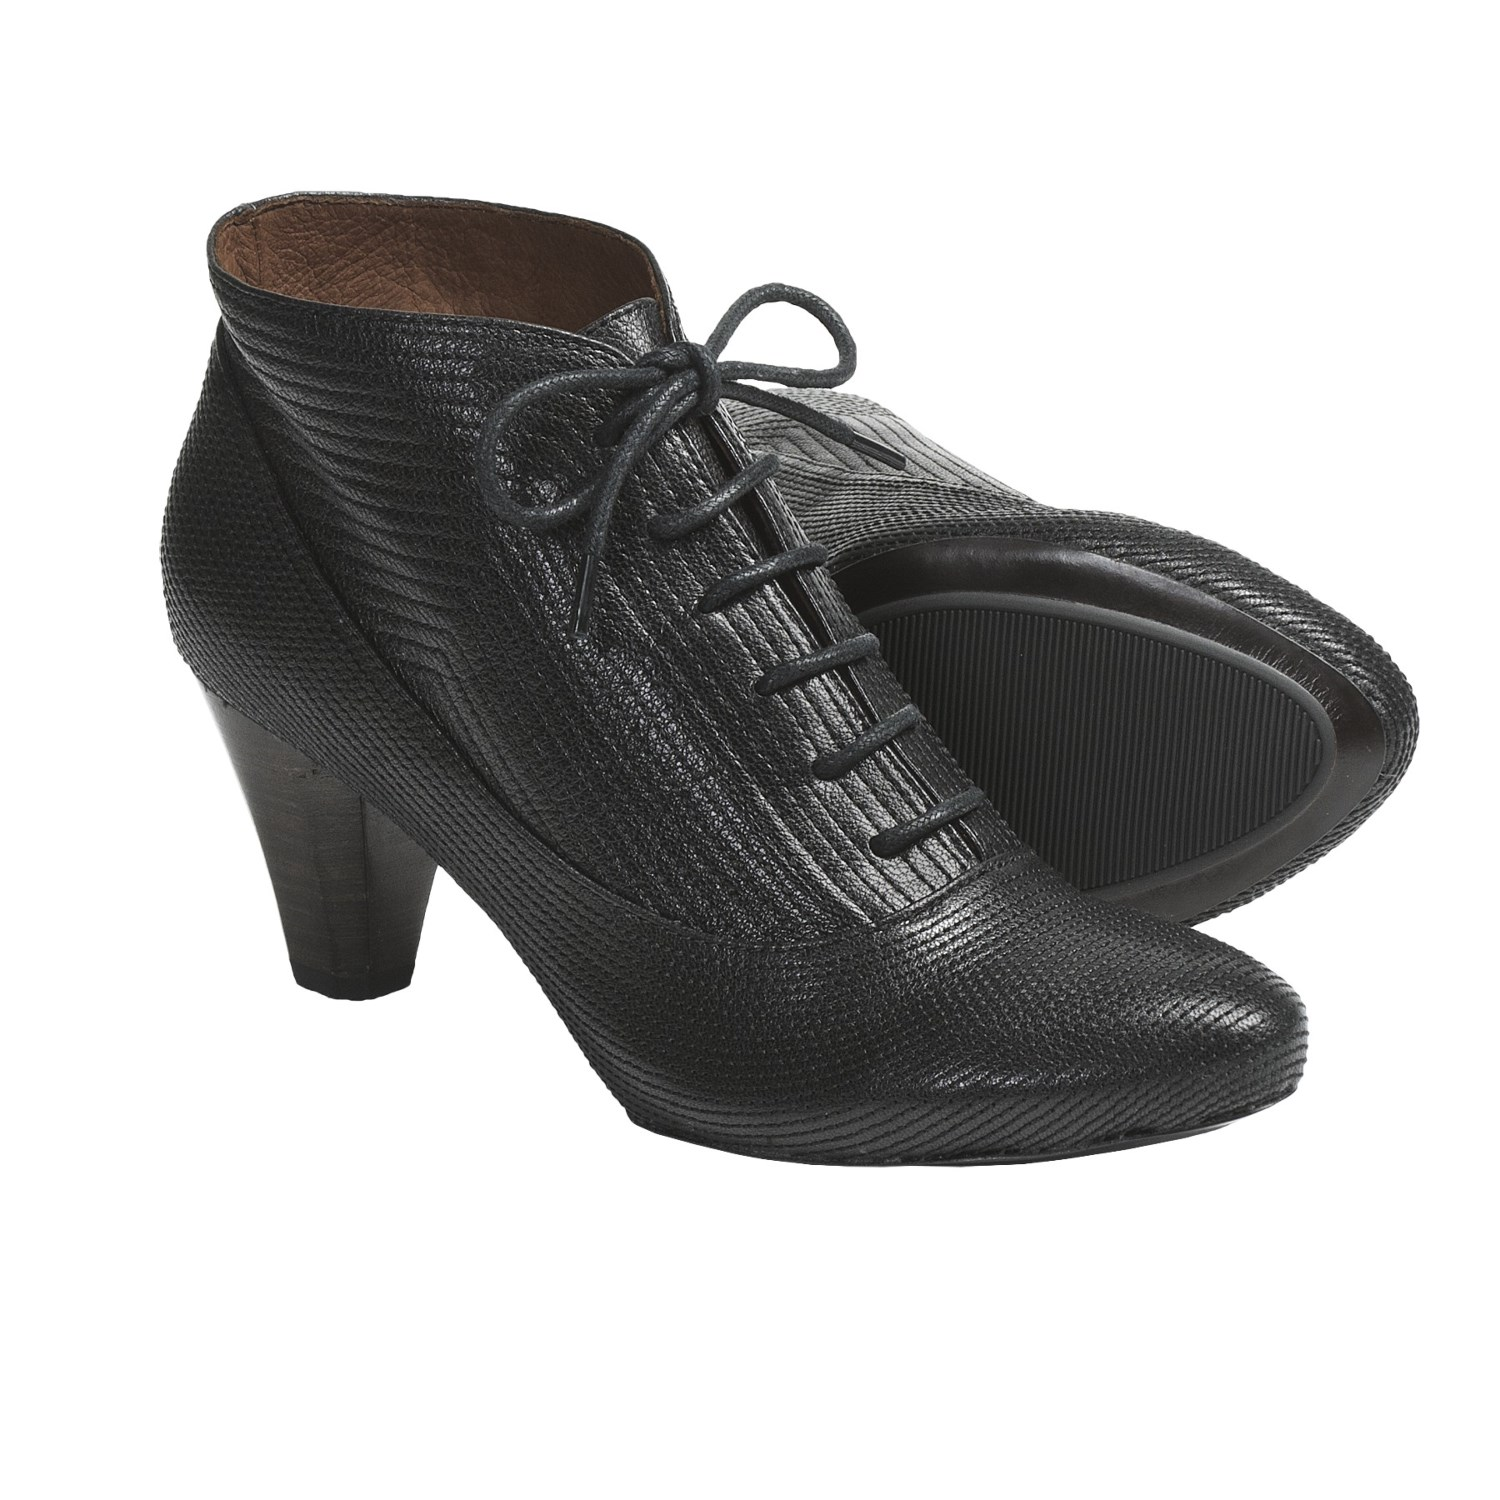 Gentle Souls Ruffina Ankle Boots -Leather (For Women) - Save 35